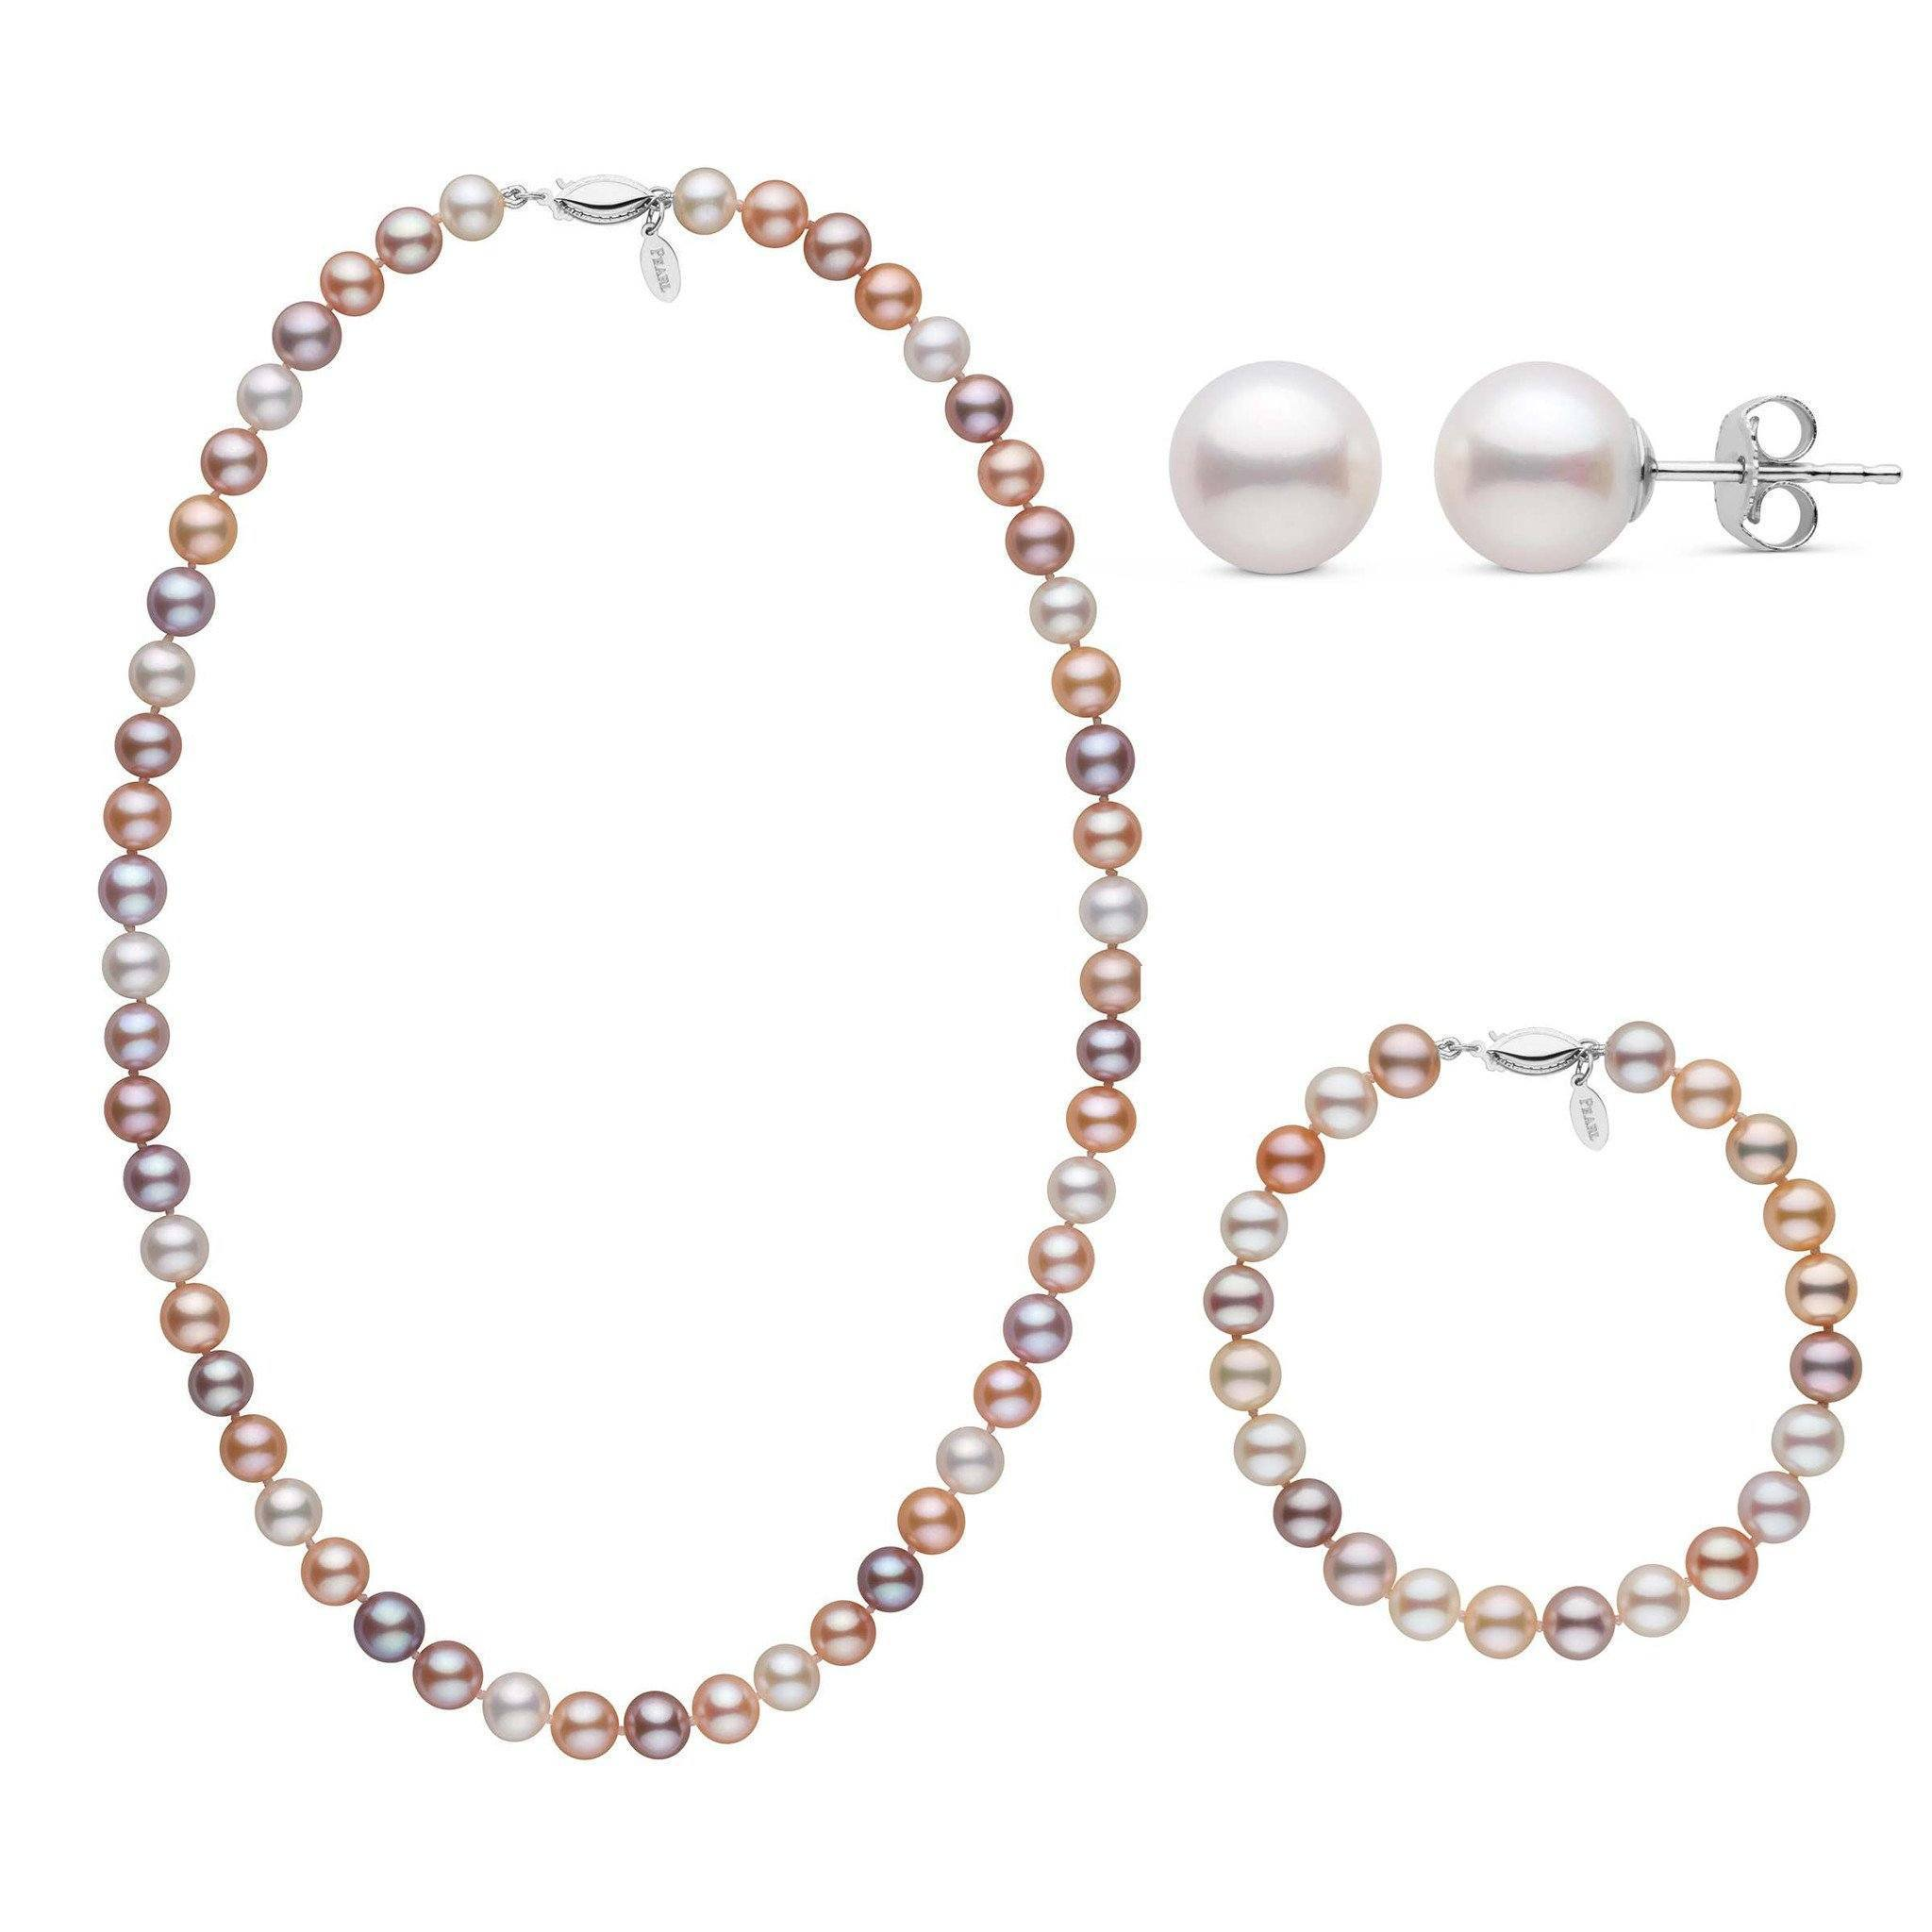 18 Inch 3 Piece Set of 7.5-8.0 mm Freshadama Multicolor Freshwater Pearl